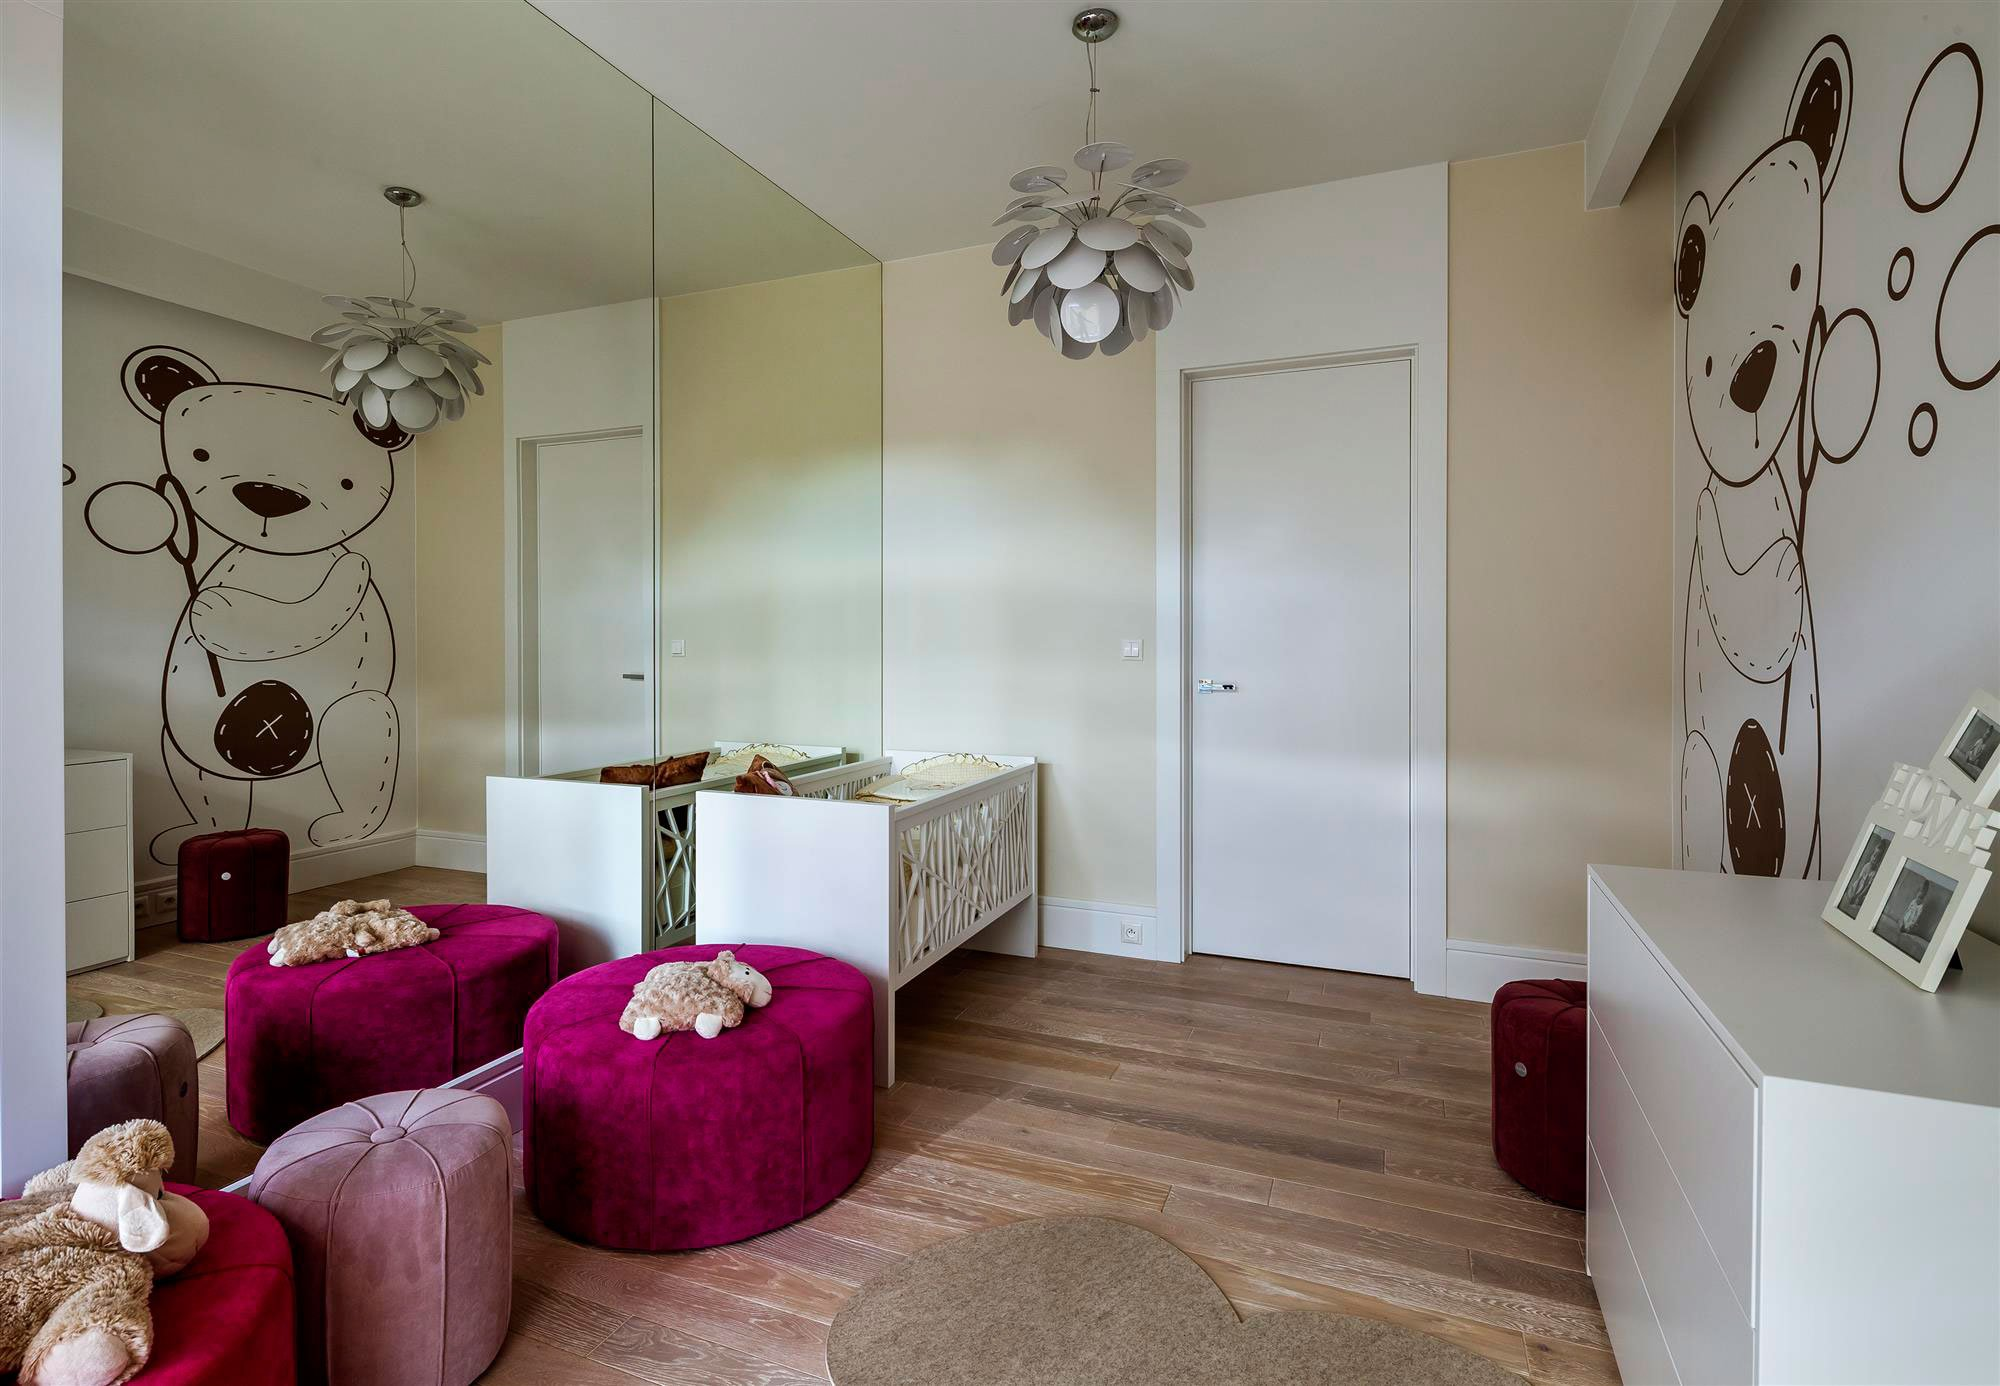 Apartment-in-Warsaw-19